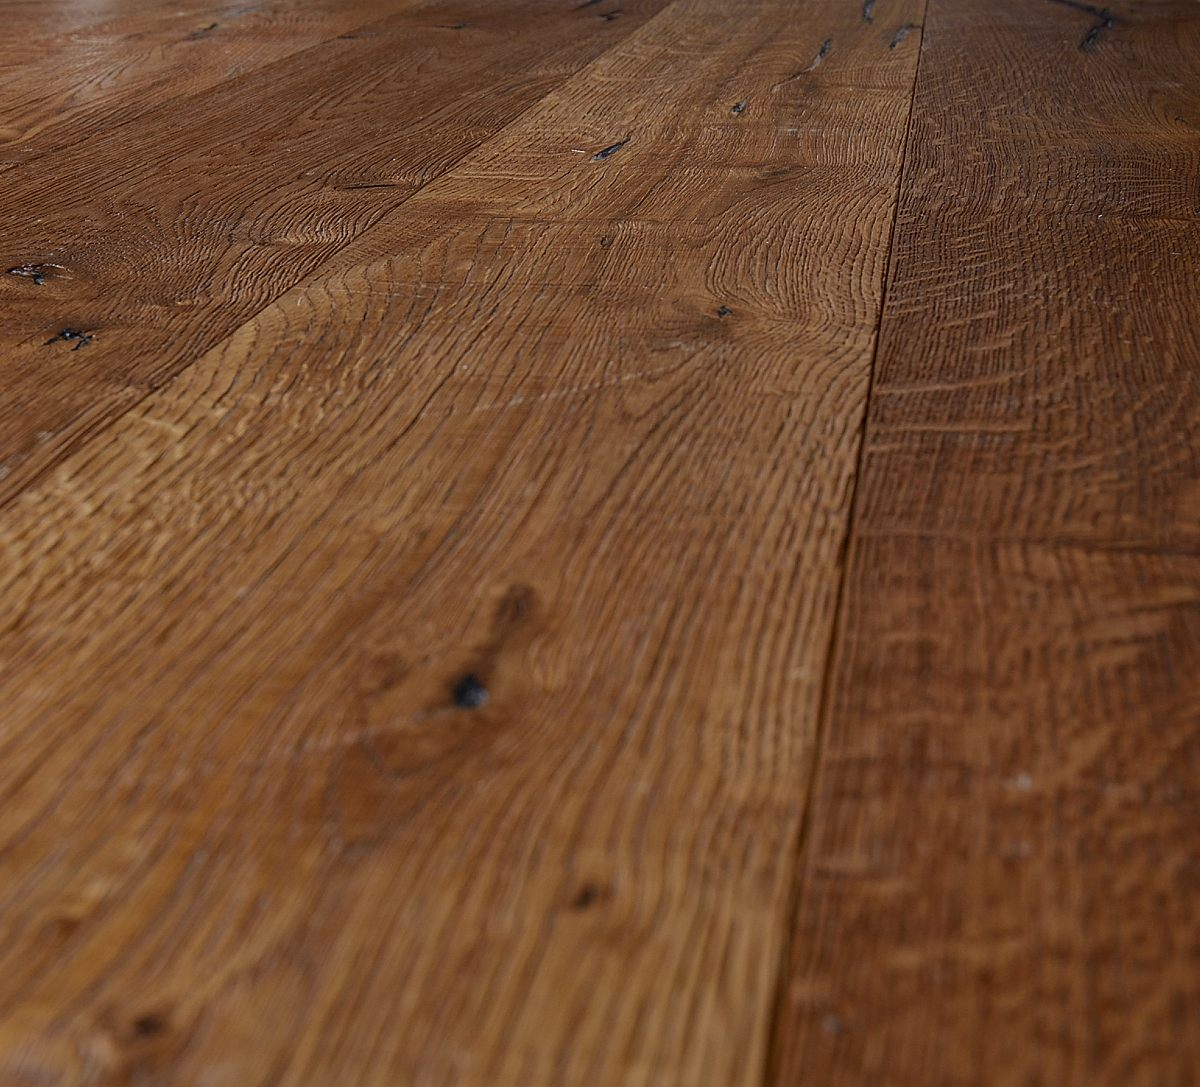 Deeply Brushed Distressed Rustic Oak Wooden Floor with Knots